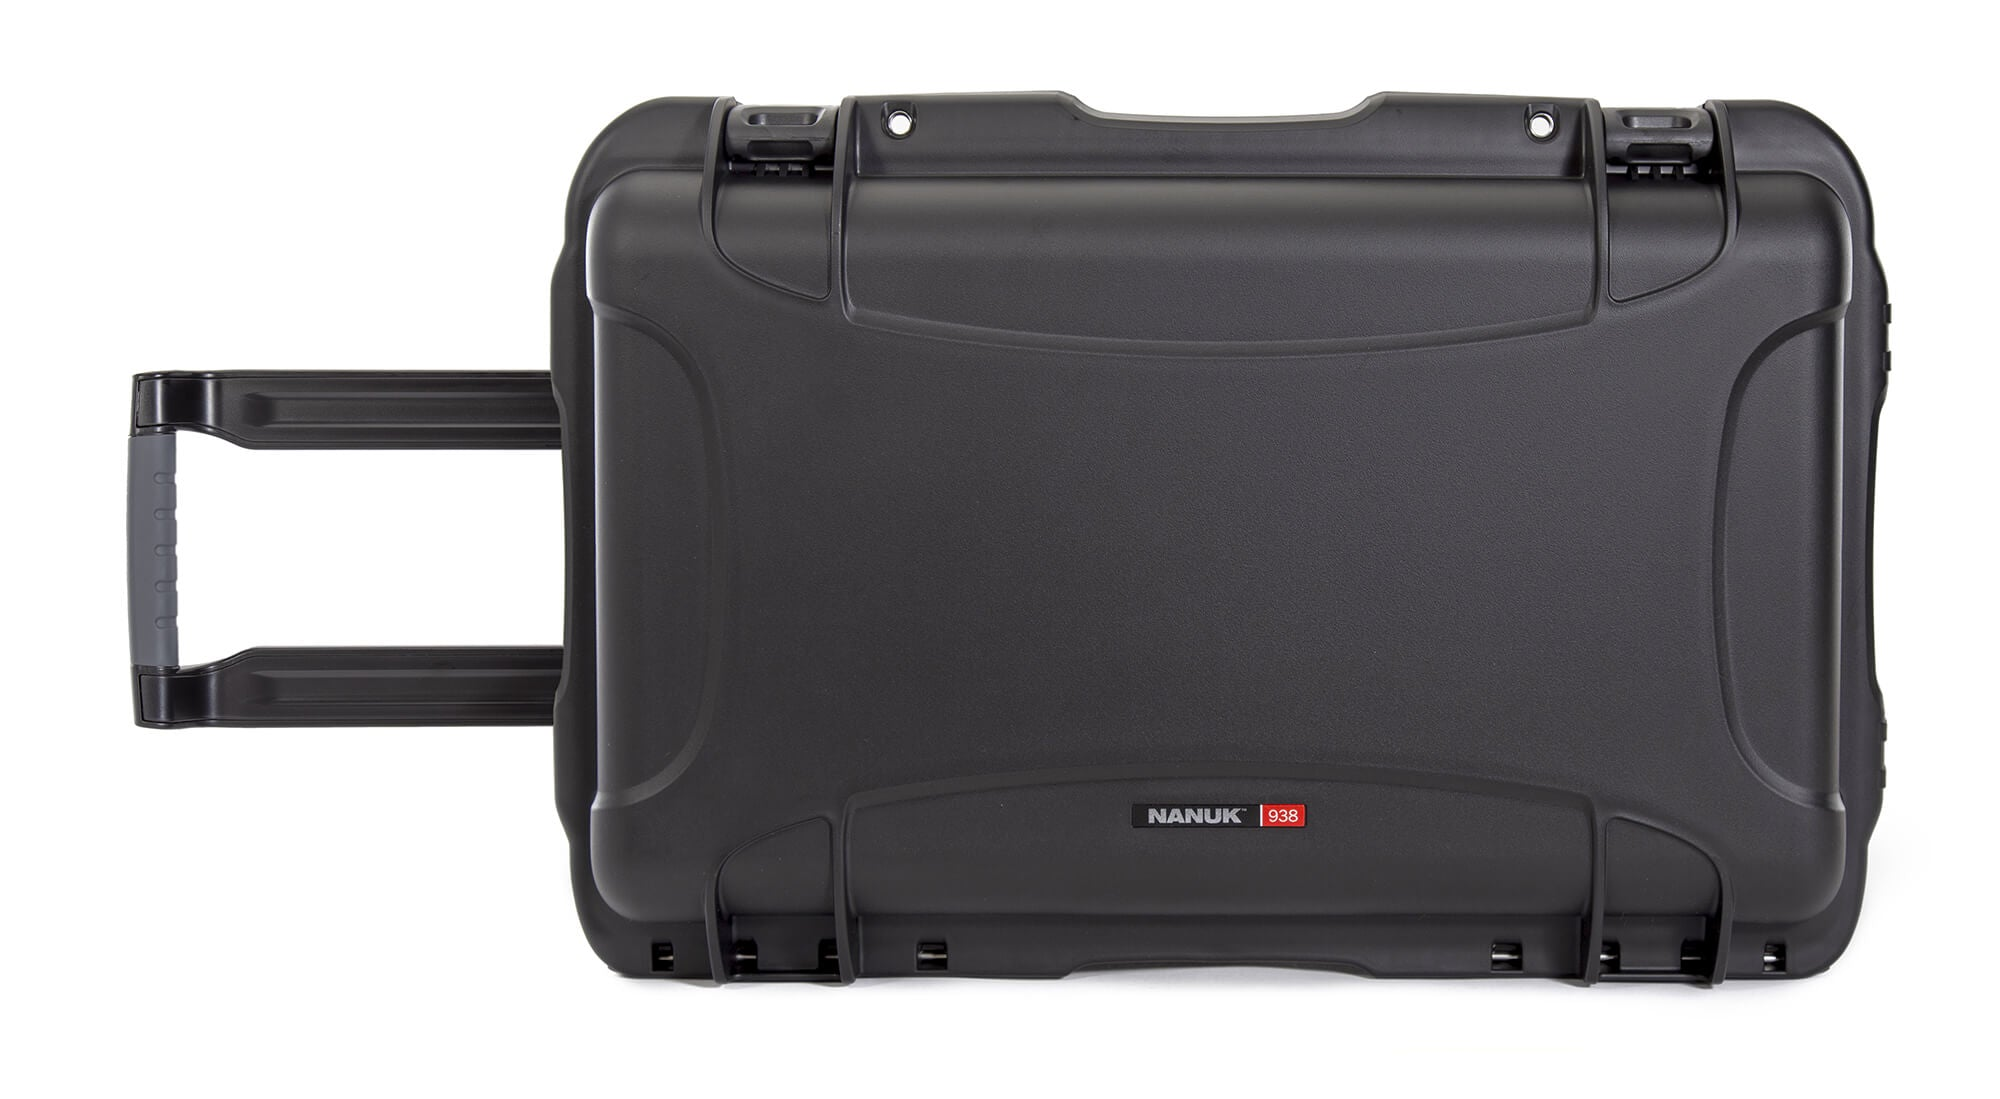 Nanuk 938 in Black with it's Retractable Handle